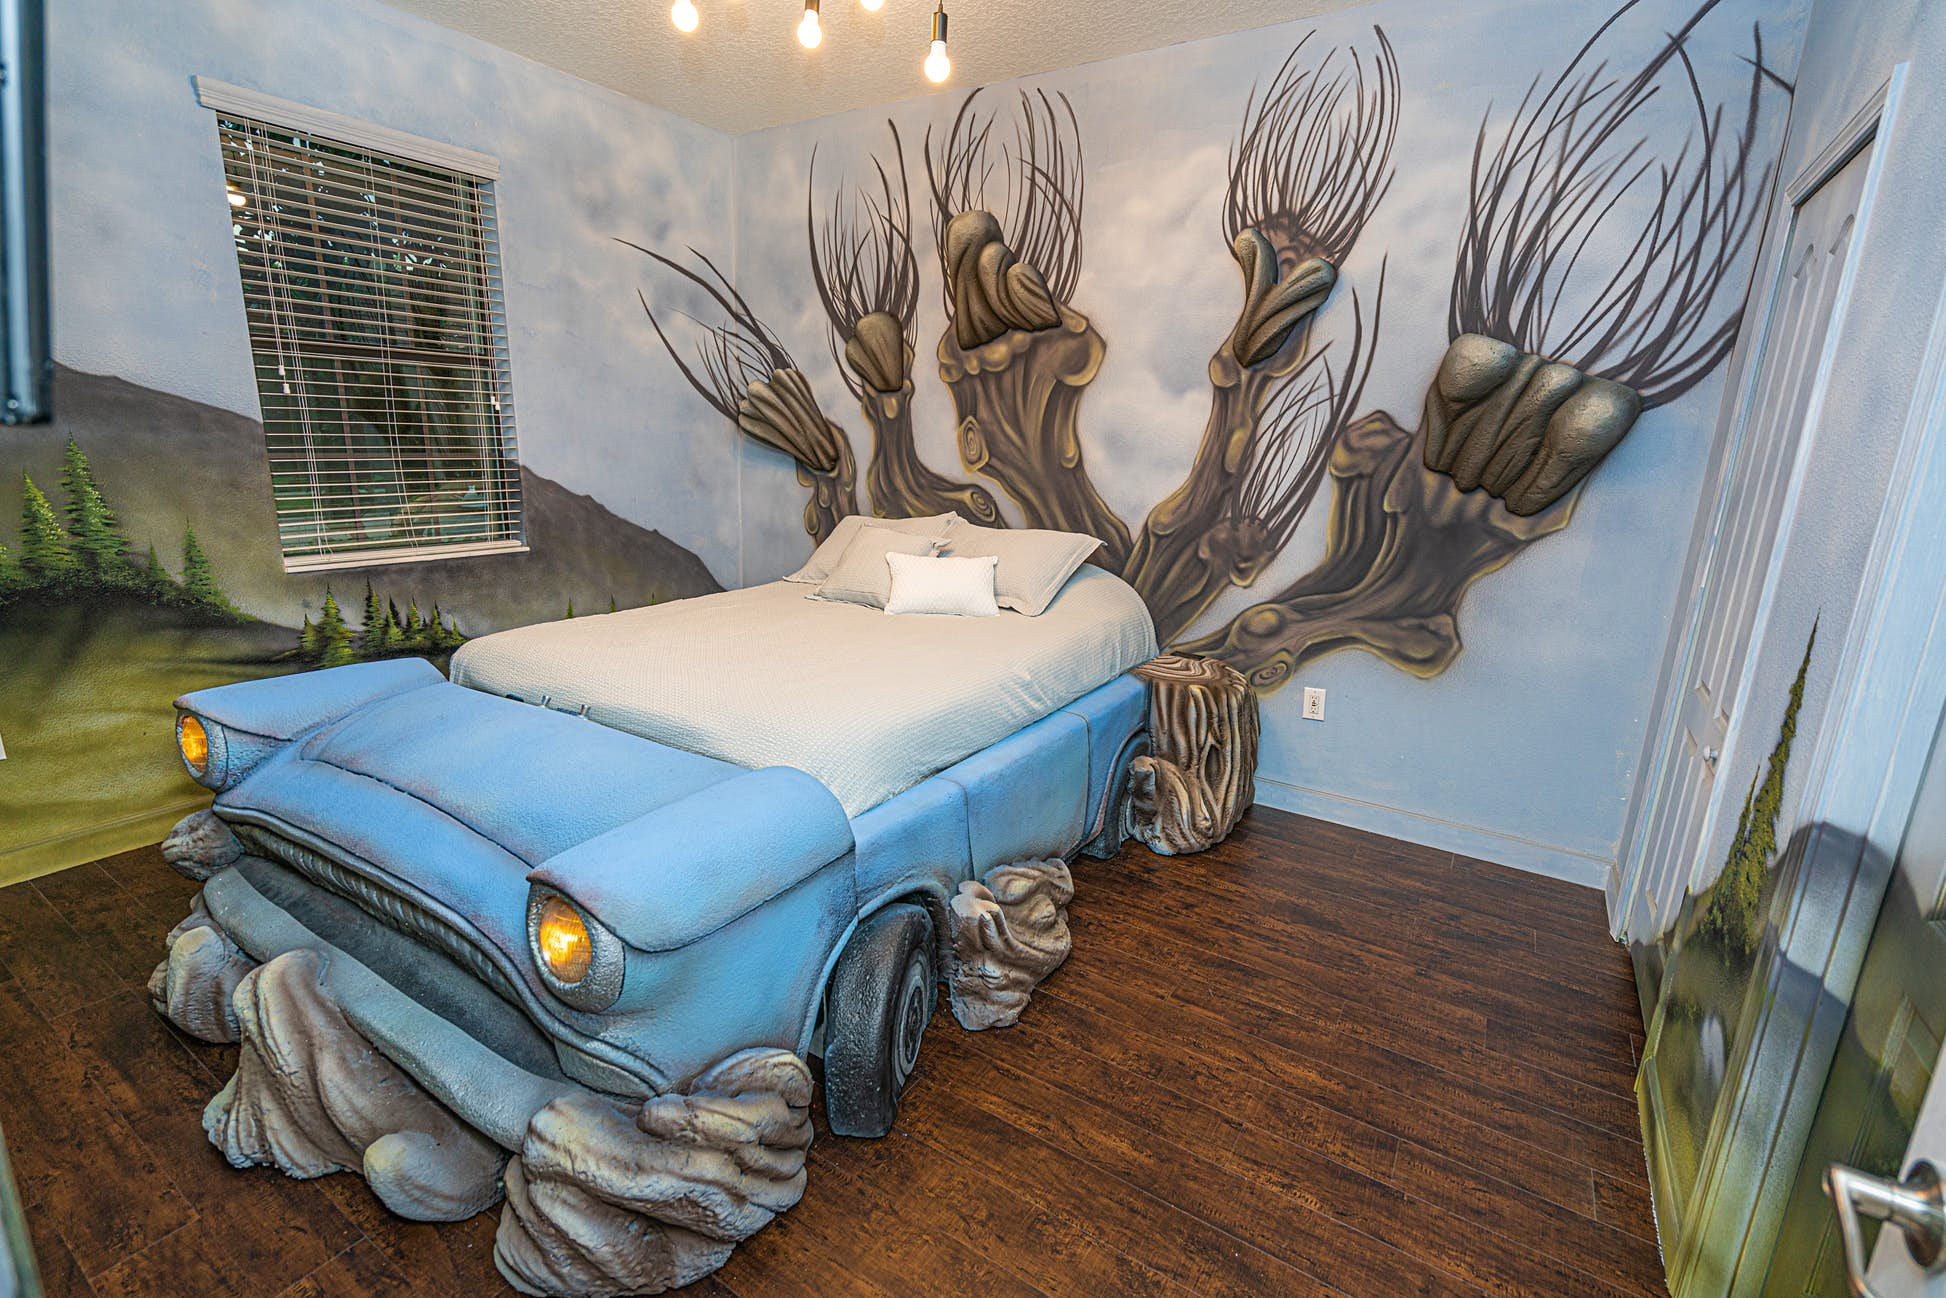 Guests can sleep in Arthur Weasley's flying Ford Anglia © Loma Homes